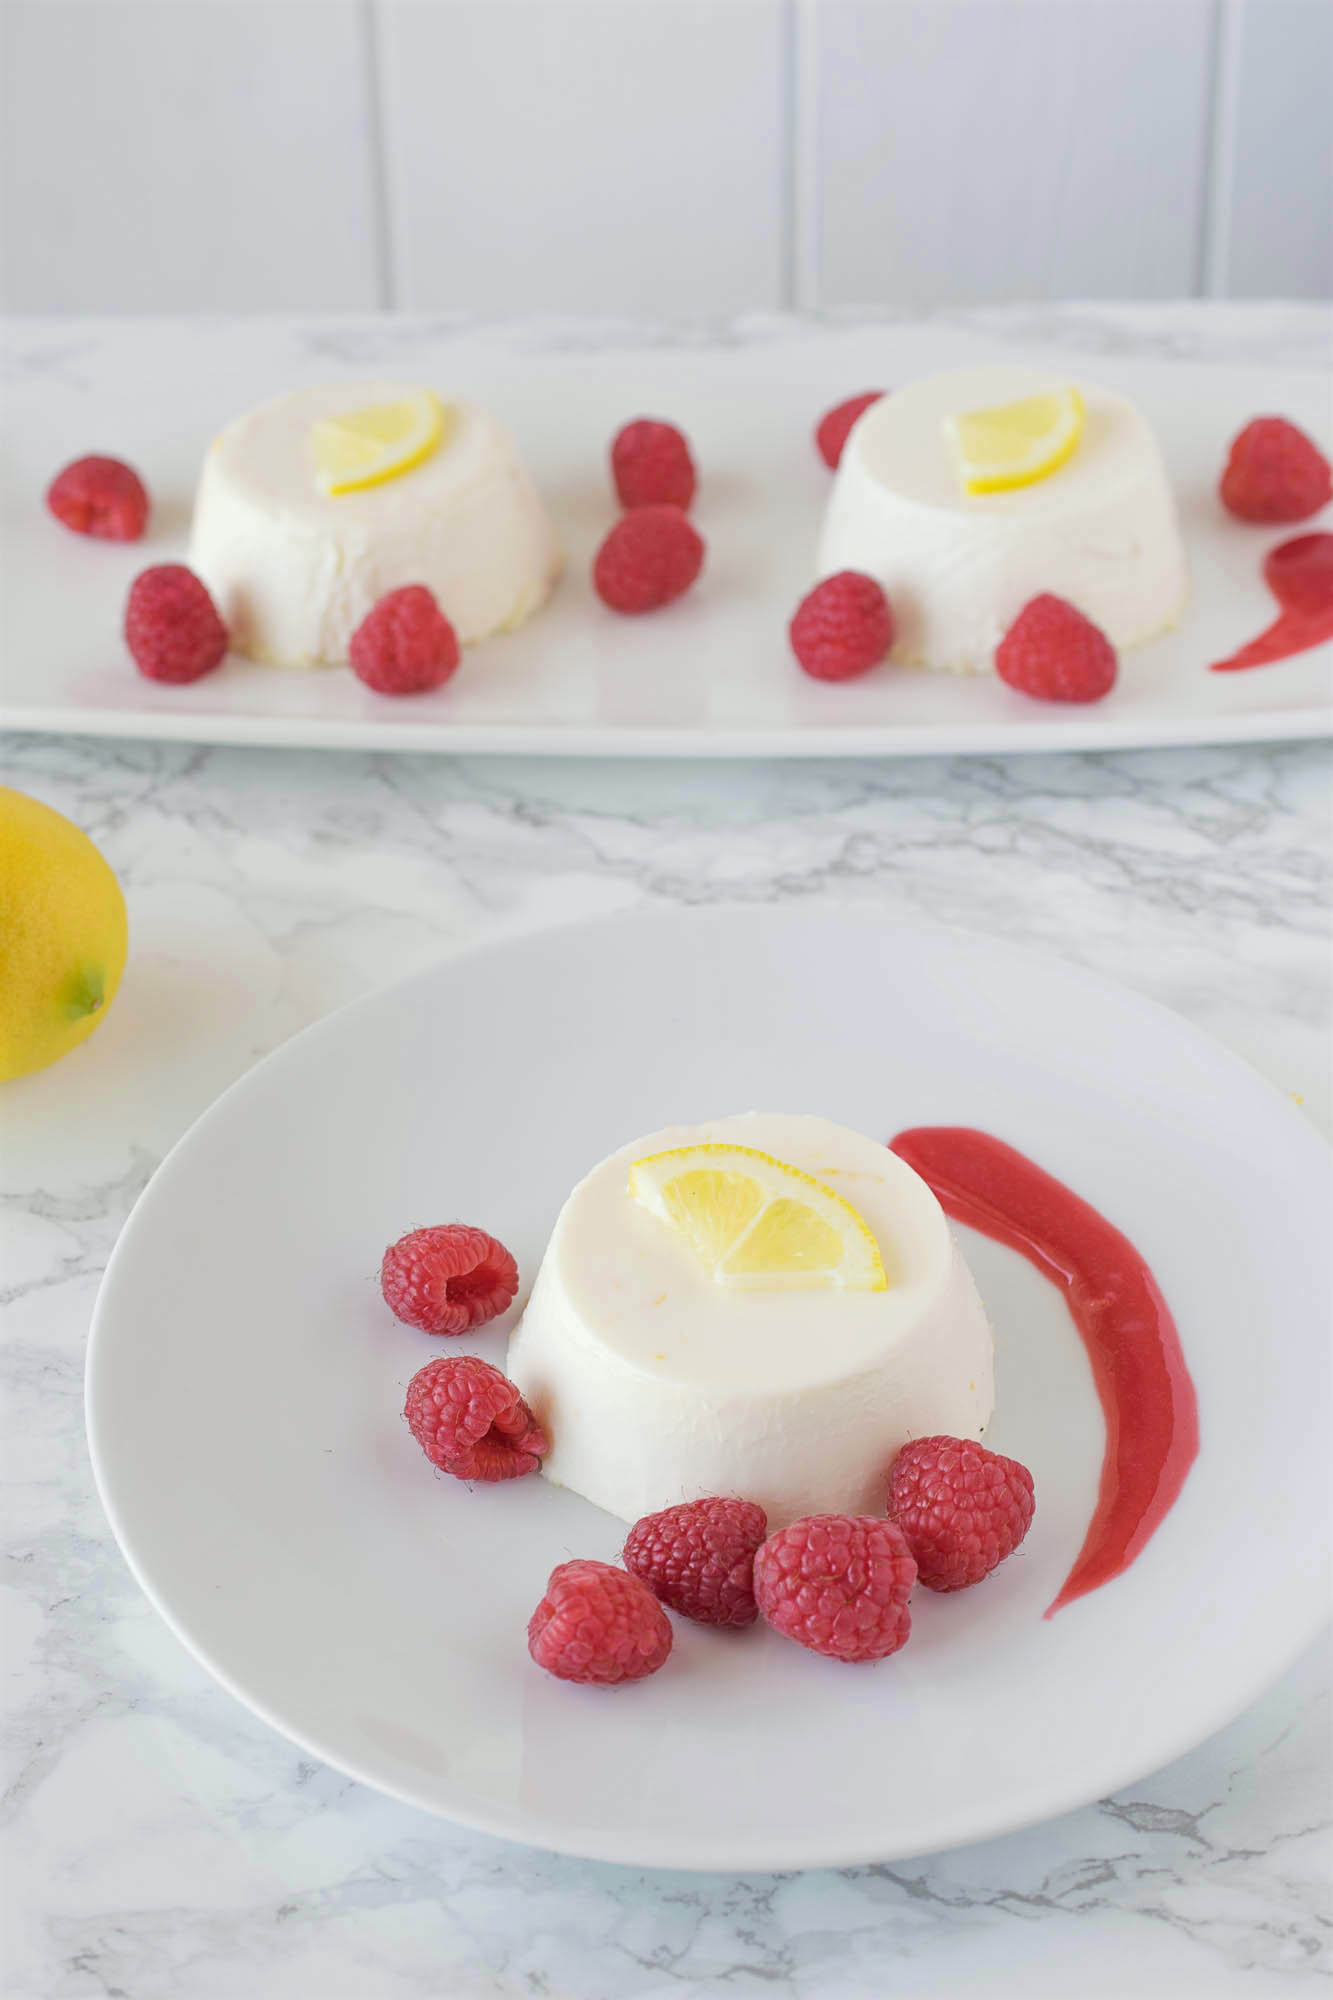 Lemon panna cotta with raspberry sauce. Creamy and sweet, this is an easy dessert that  you  make ahead, refrigerate then serve when you're ready for dessert.